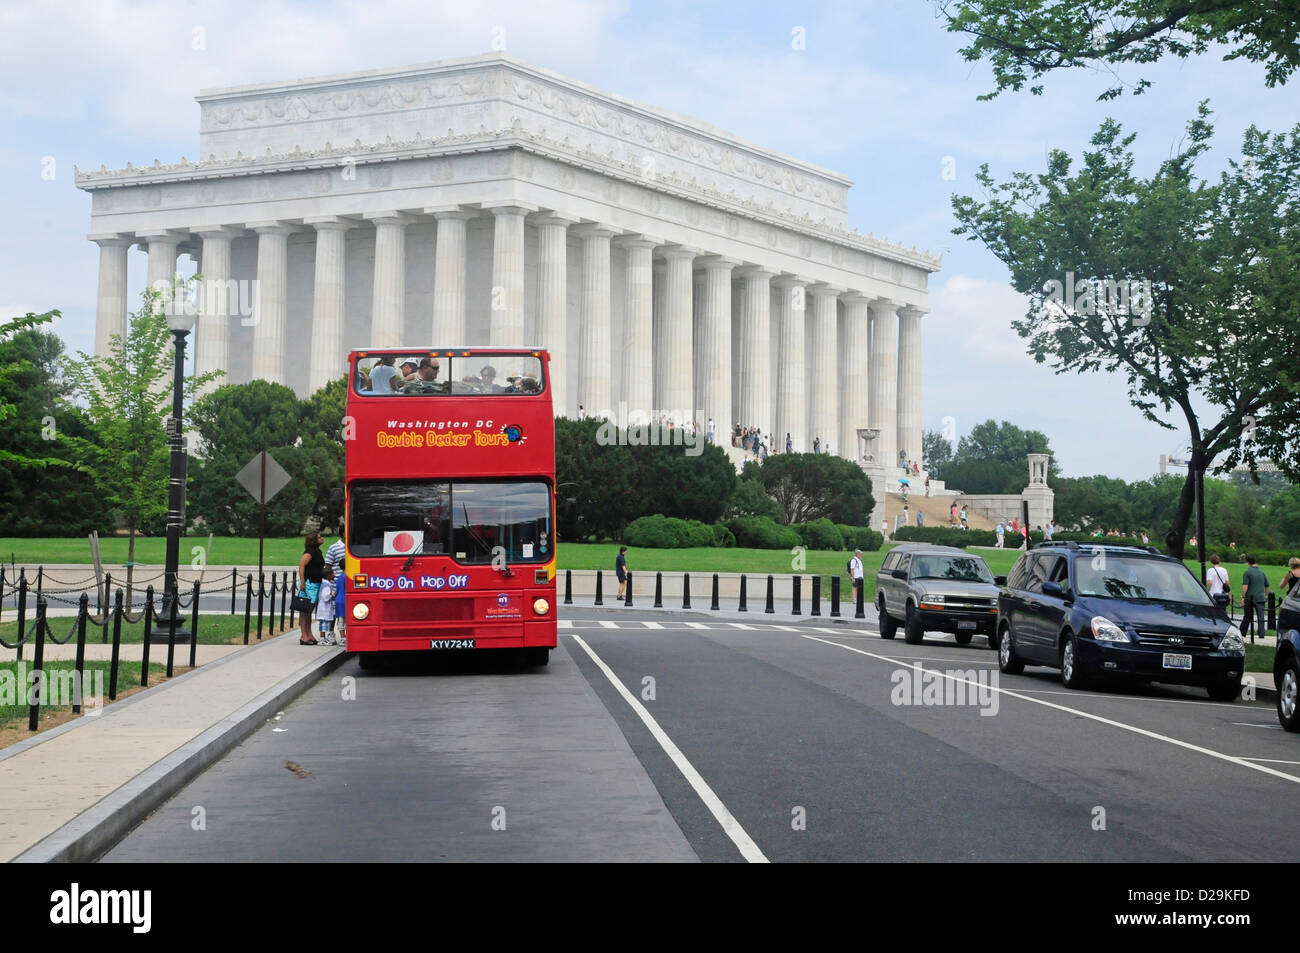 Double Deck Tour Bus At Lincoln Memorial - Stock Image